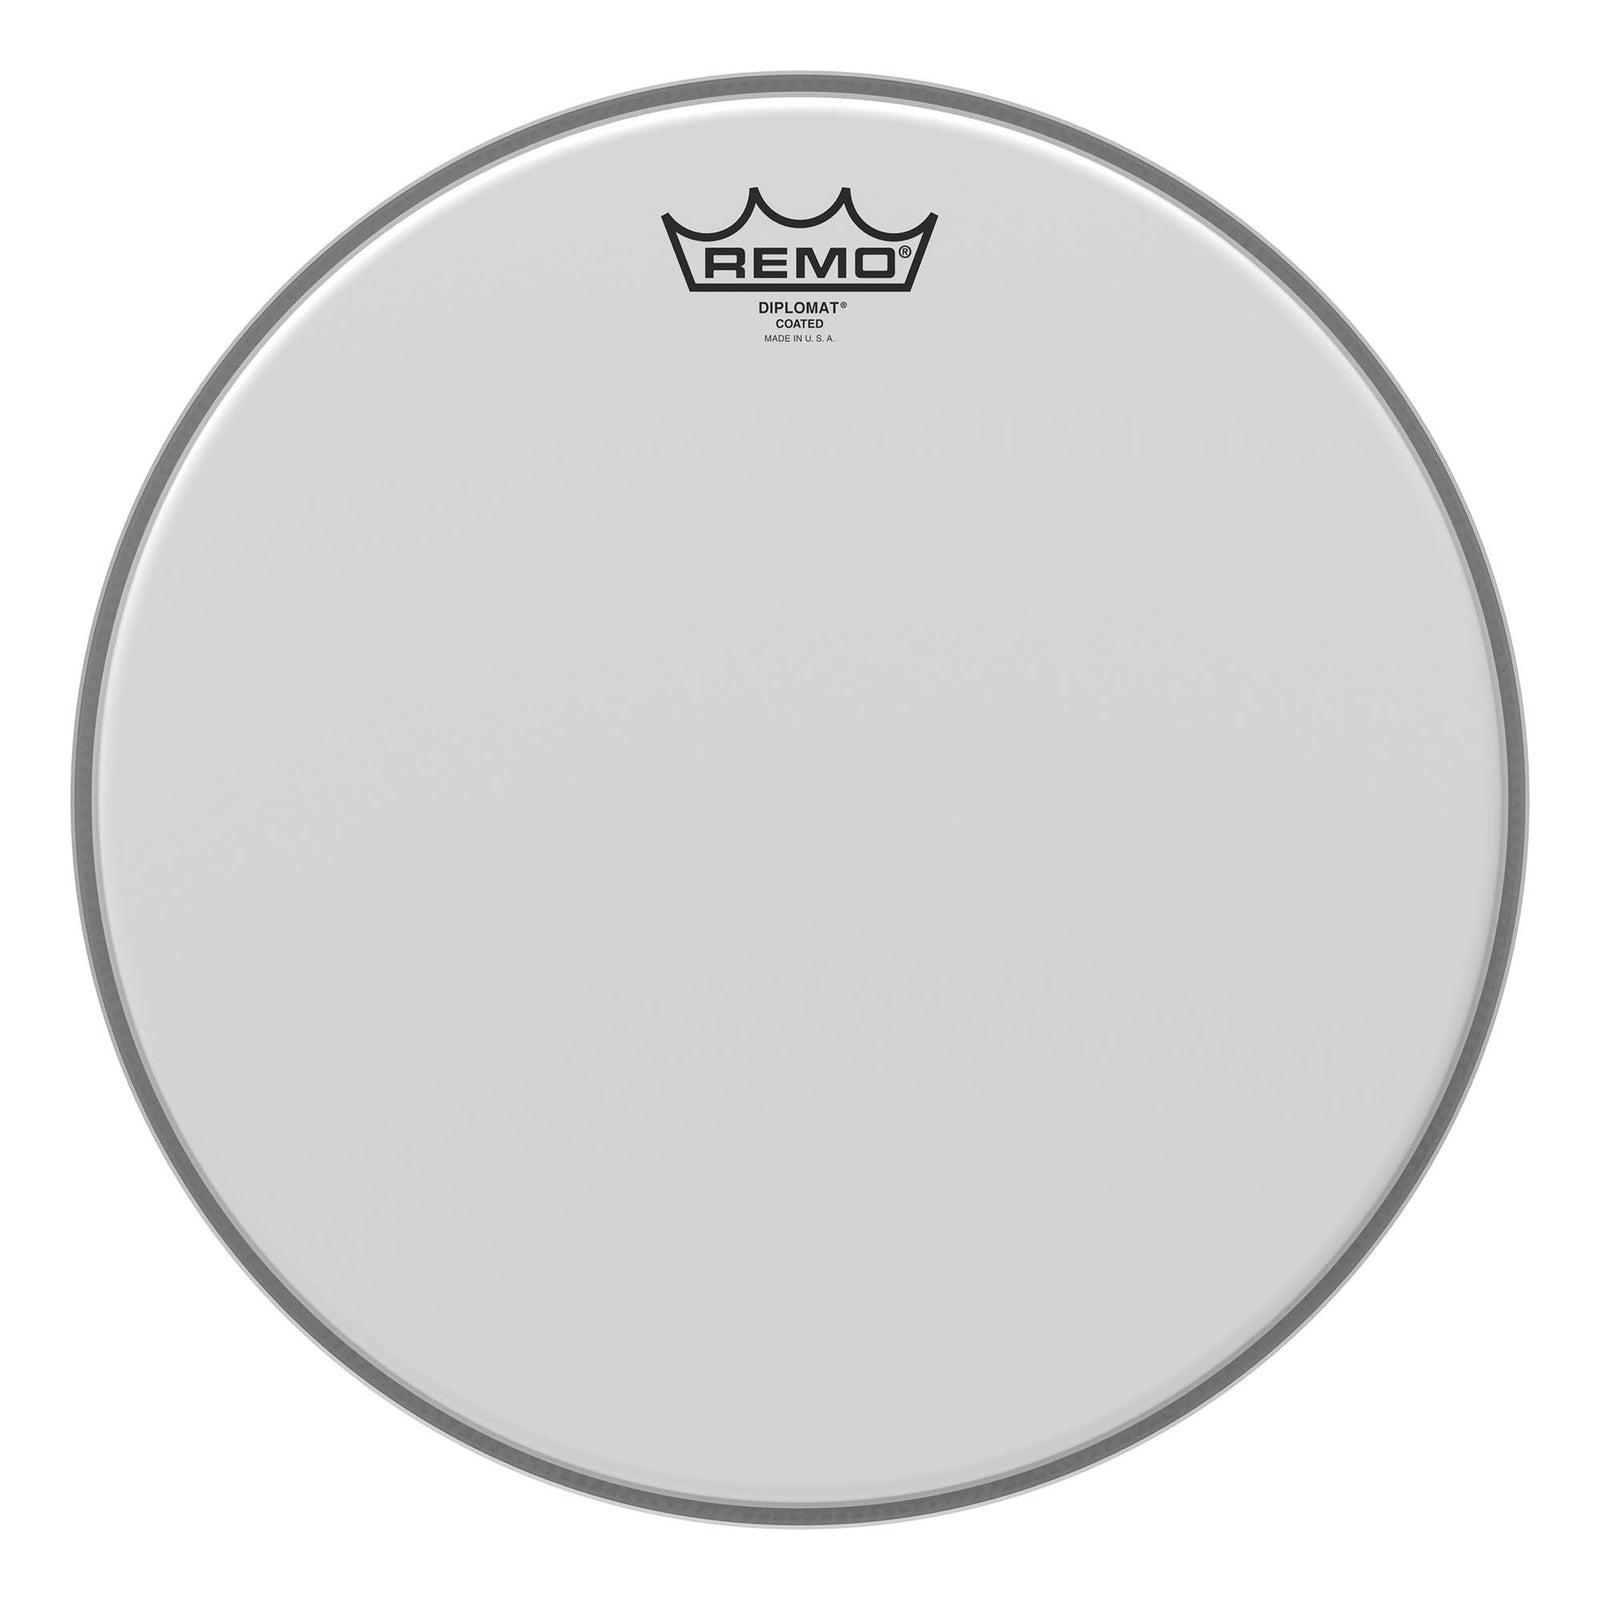 "Remo 13"" Coated Diplomat"